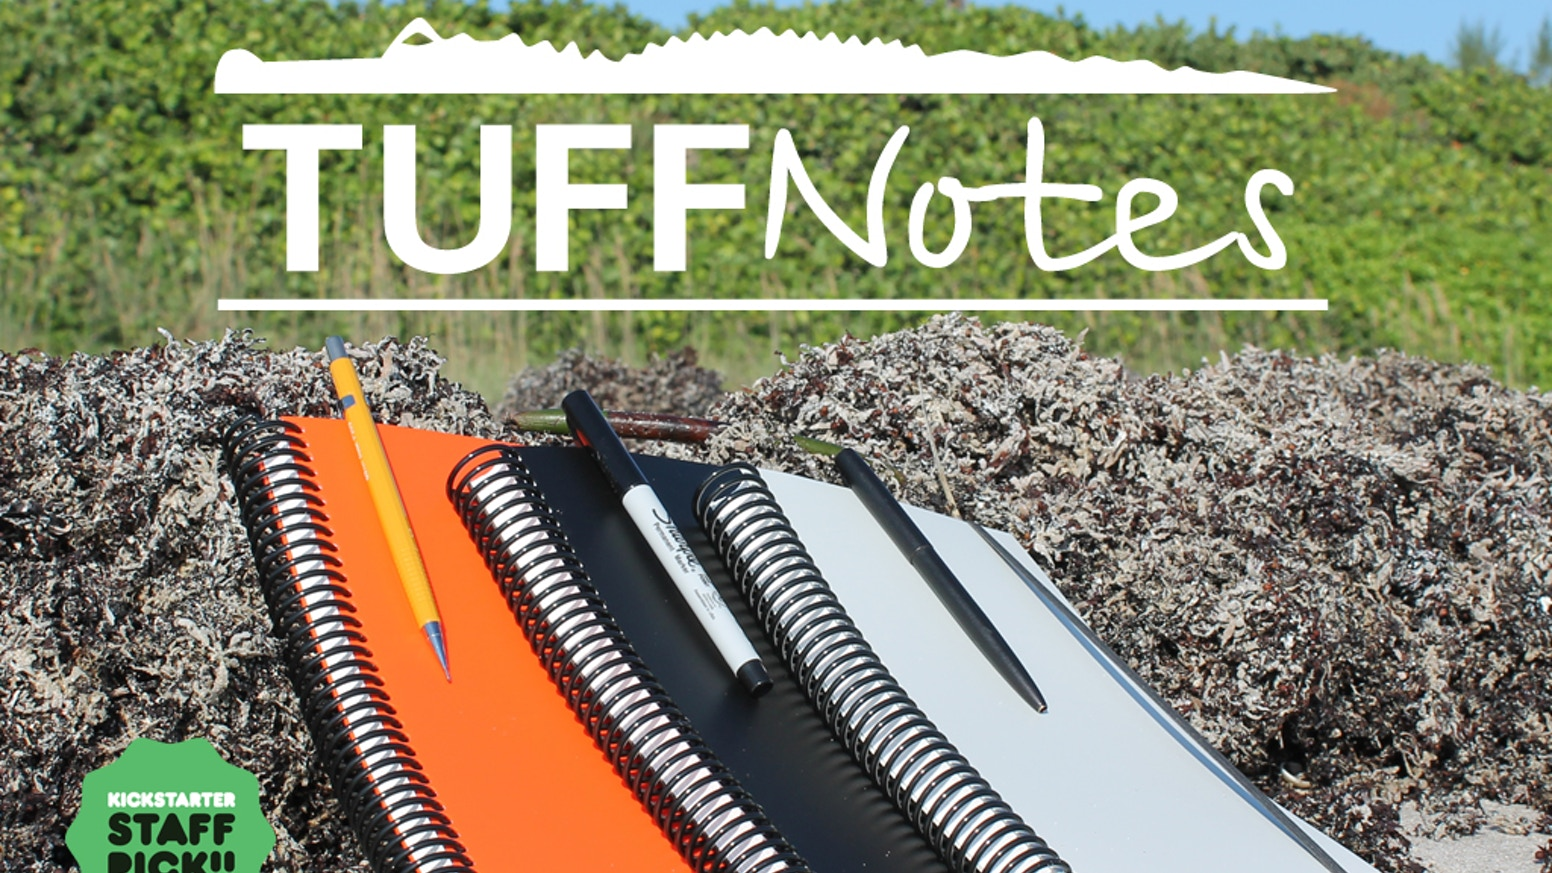 Waterproof, Incredibly Strong, Extremely Durable, Tree-free, and Made in USA notebooks designed to be used in any environment.